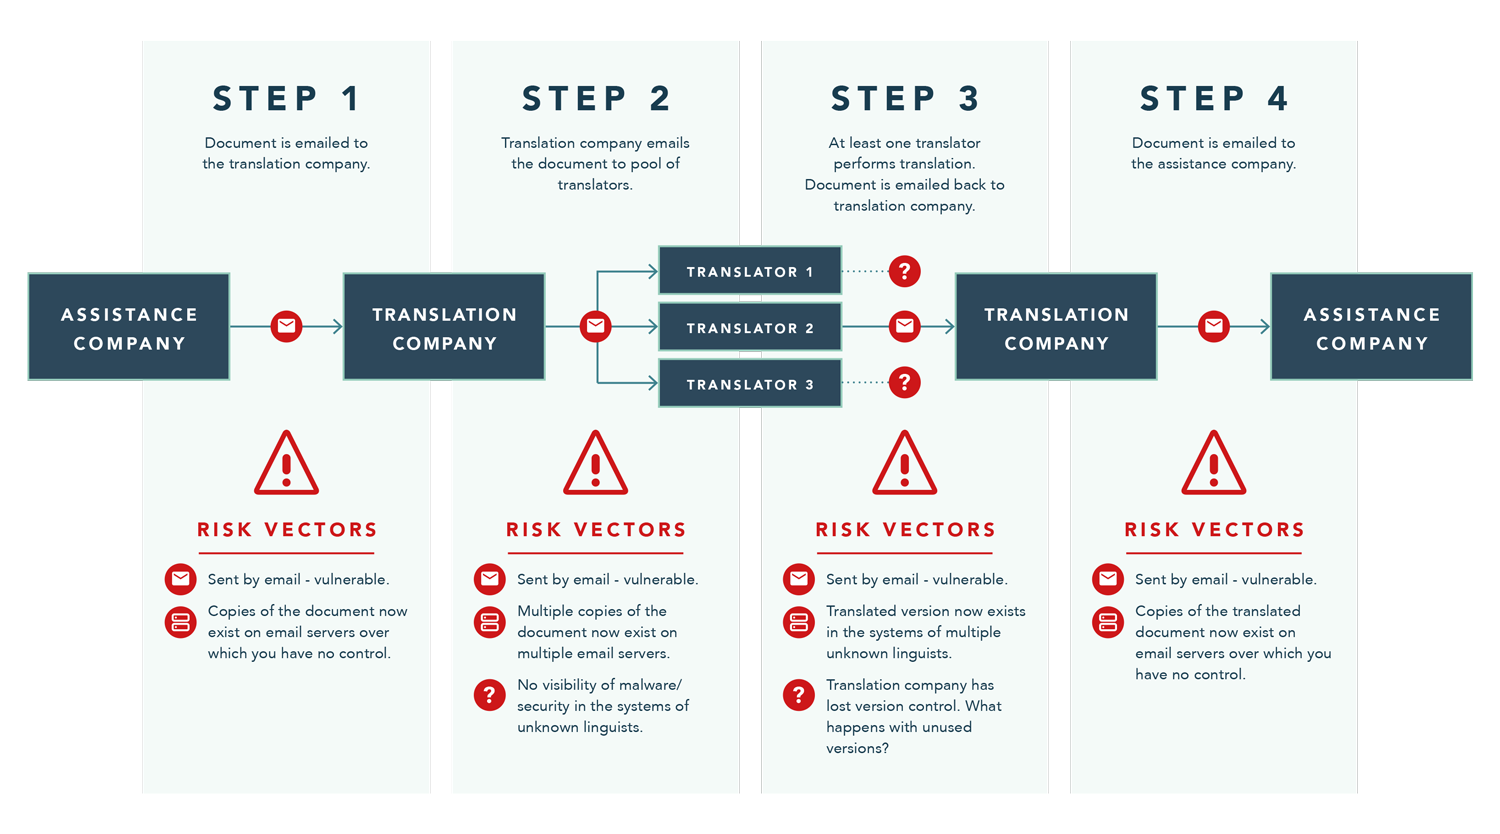 Infographic displaying risks associated with translation agency workflow